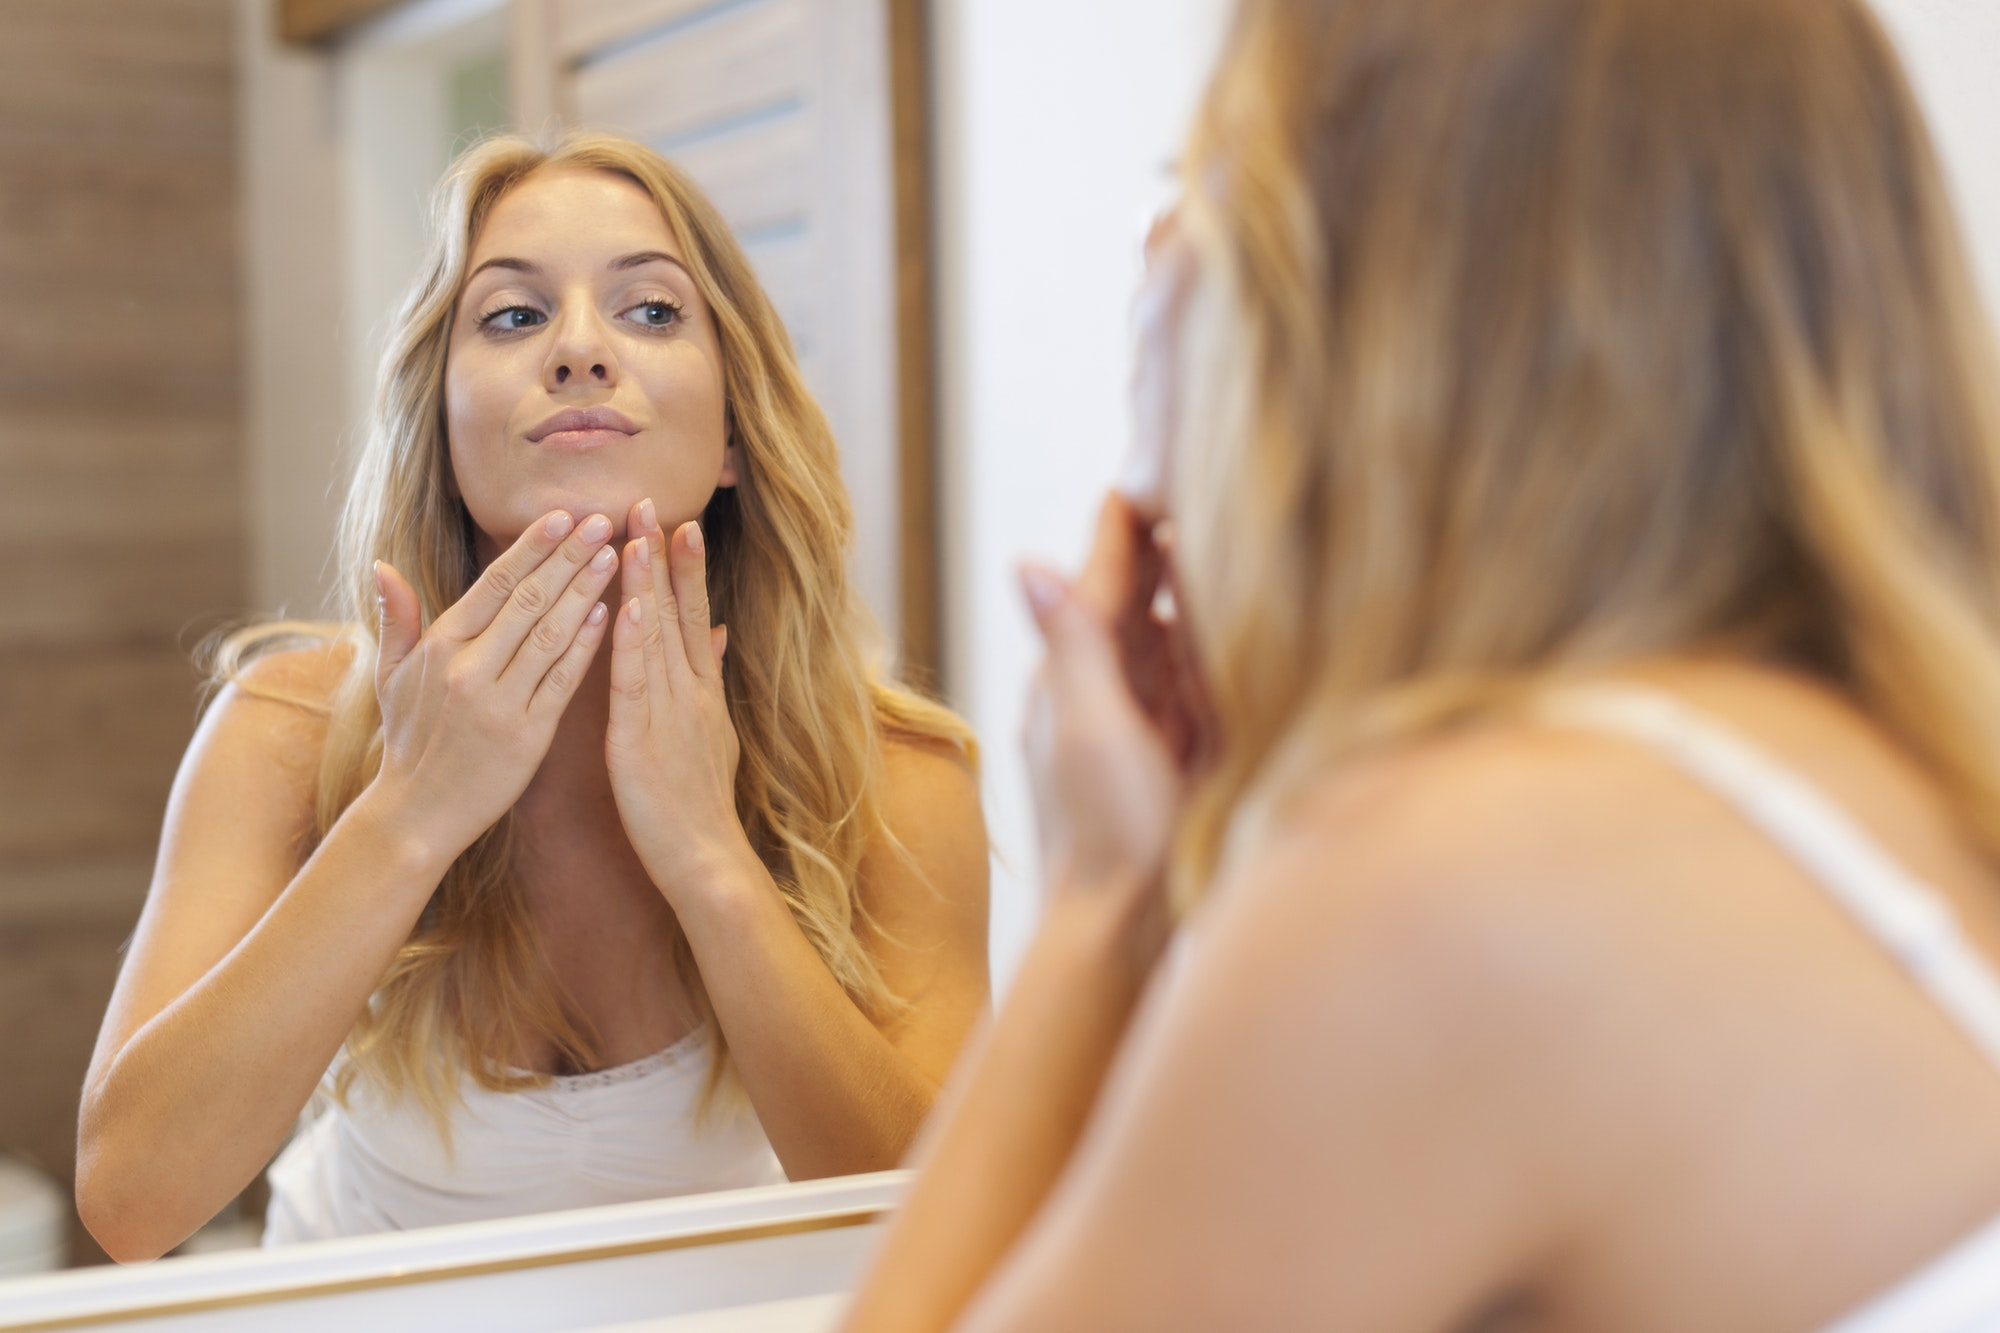 Blonde woman caring about her skin on face